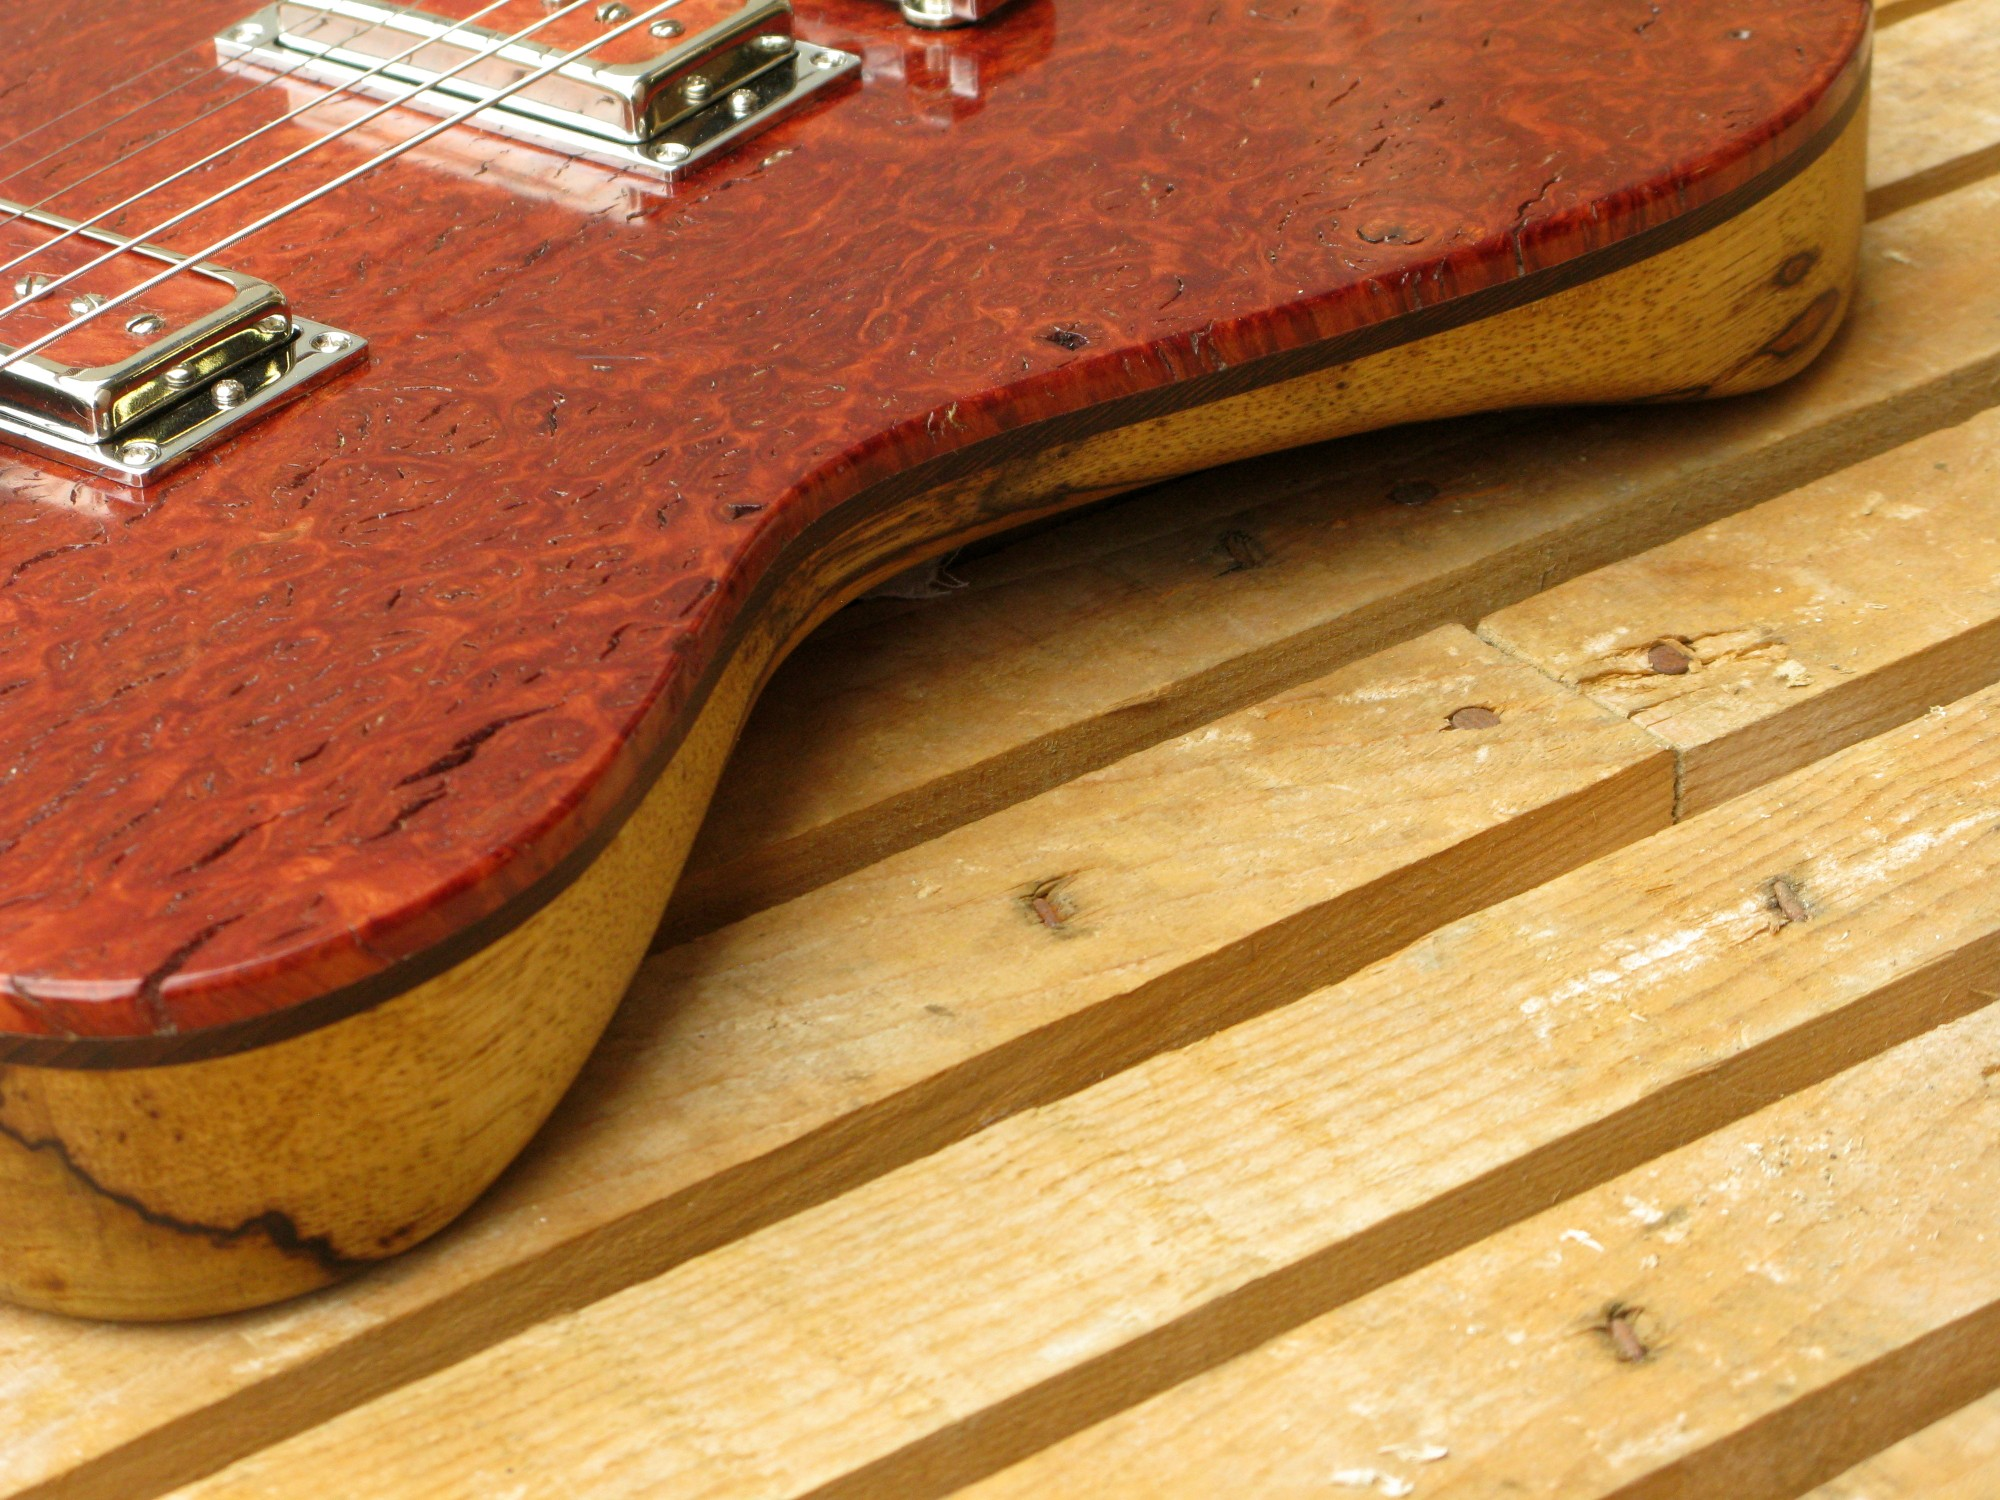 Belly cut di una chitarra Telecaster in black korina e top burl red